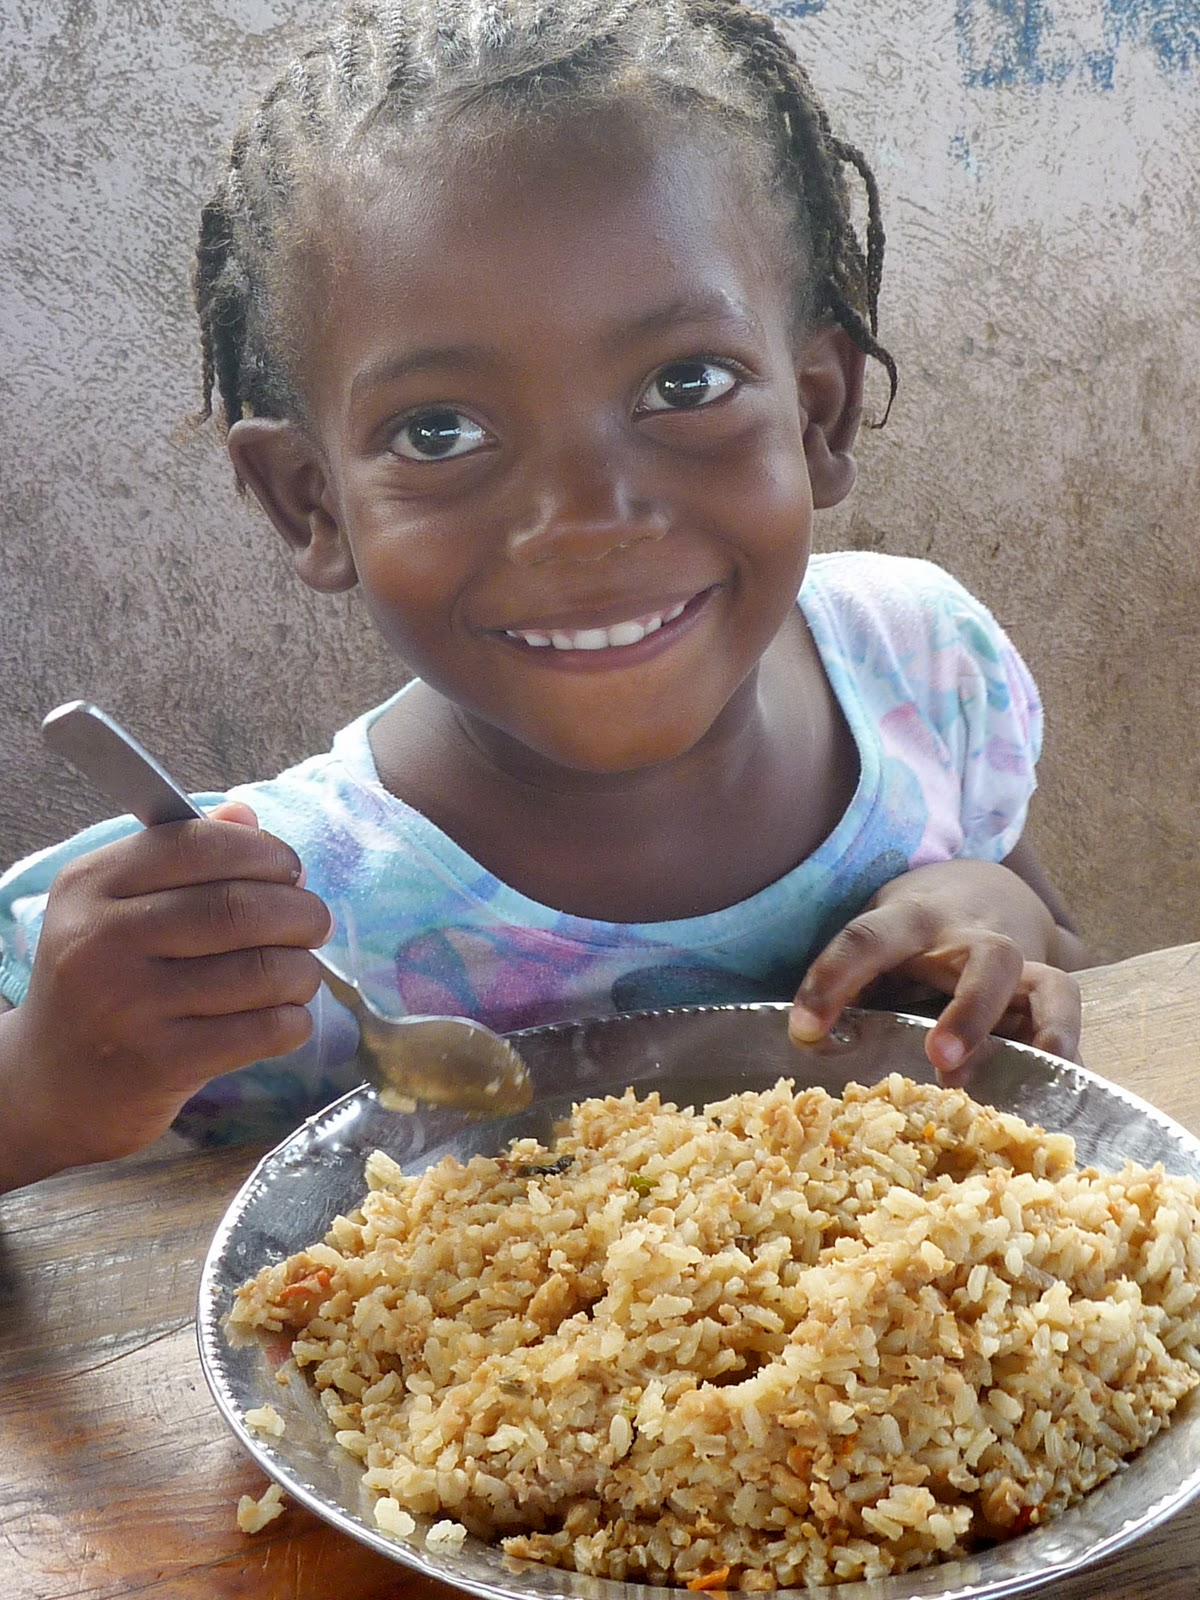 Thanks to feed my starving children fmsc for their donation of pre